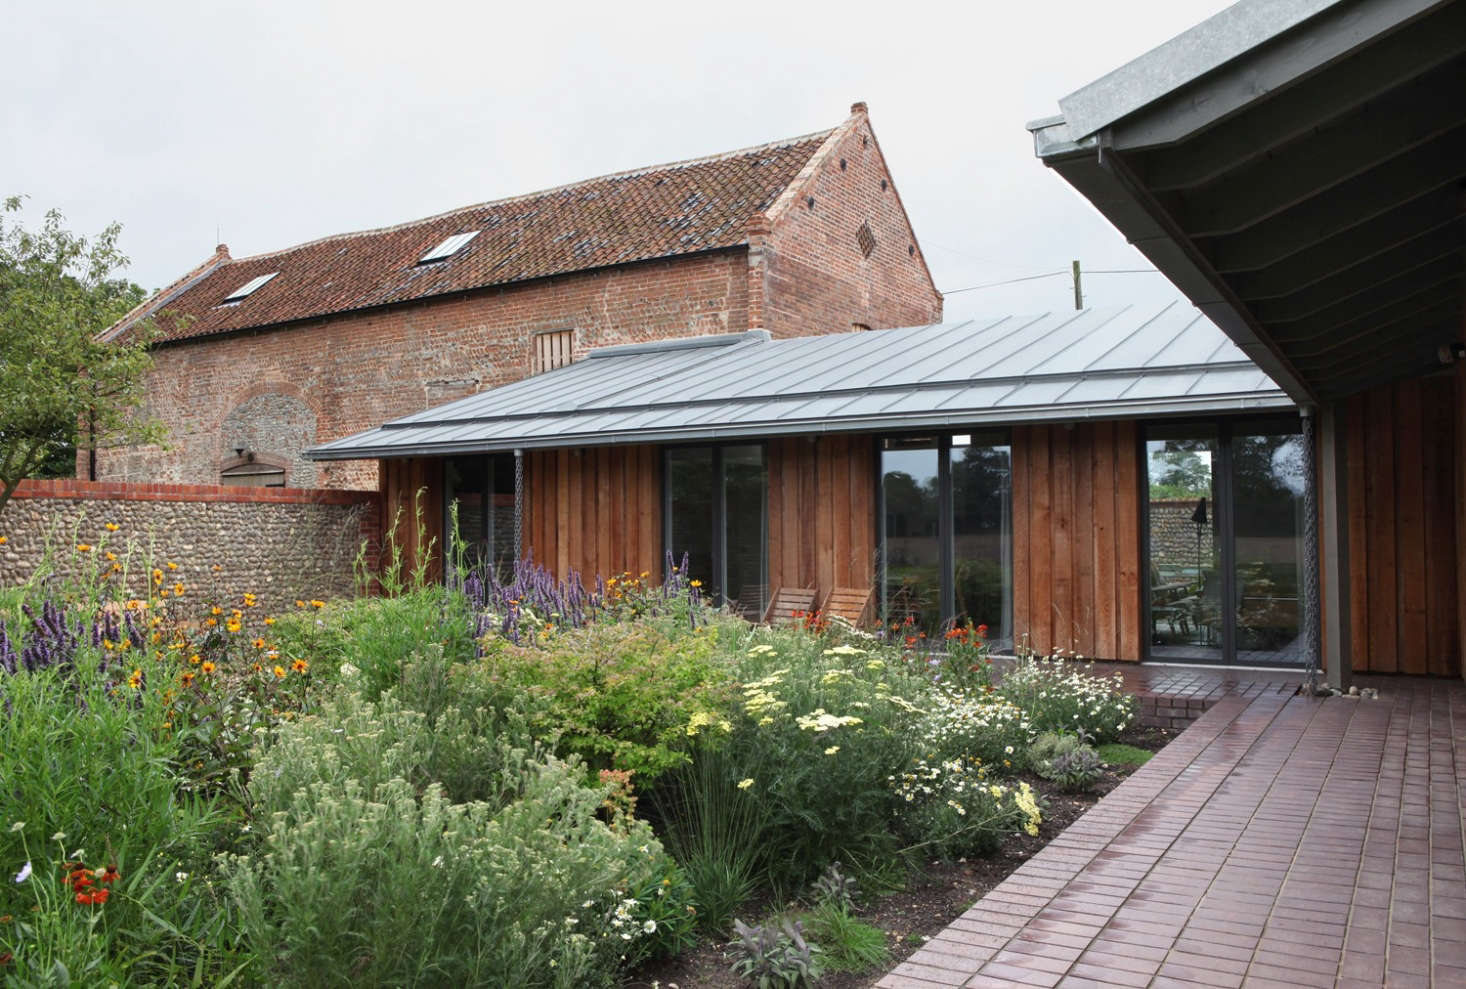 : A view of one of the two inner courtyards, formed by the connection of the tithe barn (L) and the piggery (R). Photograph by Ioana Marinescu. See more in A Rural Remodel in Norfolk, Tithe Barn and Piggery Included.